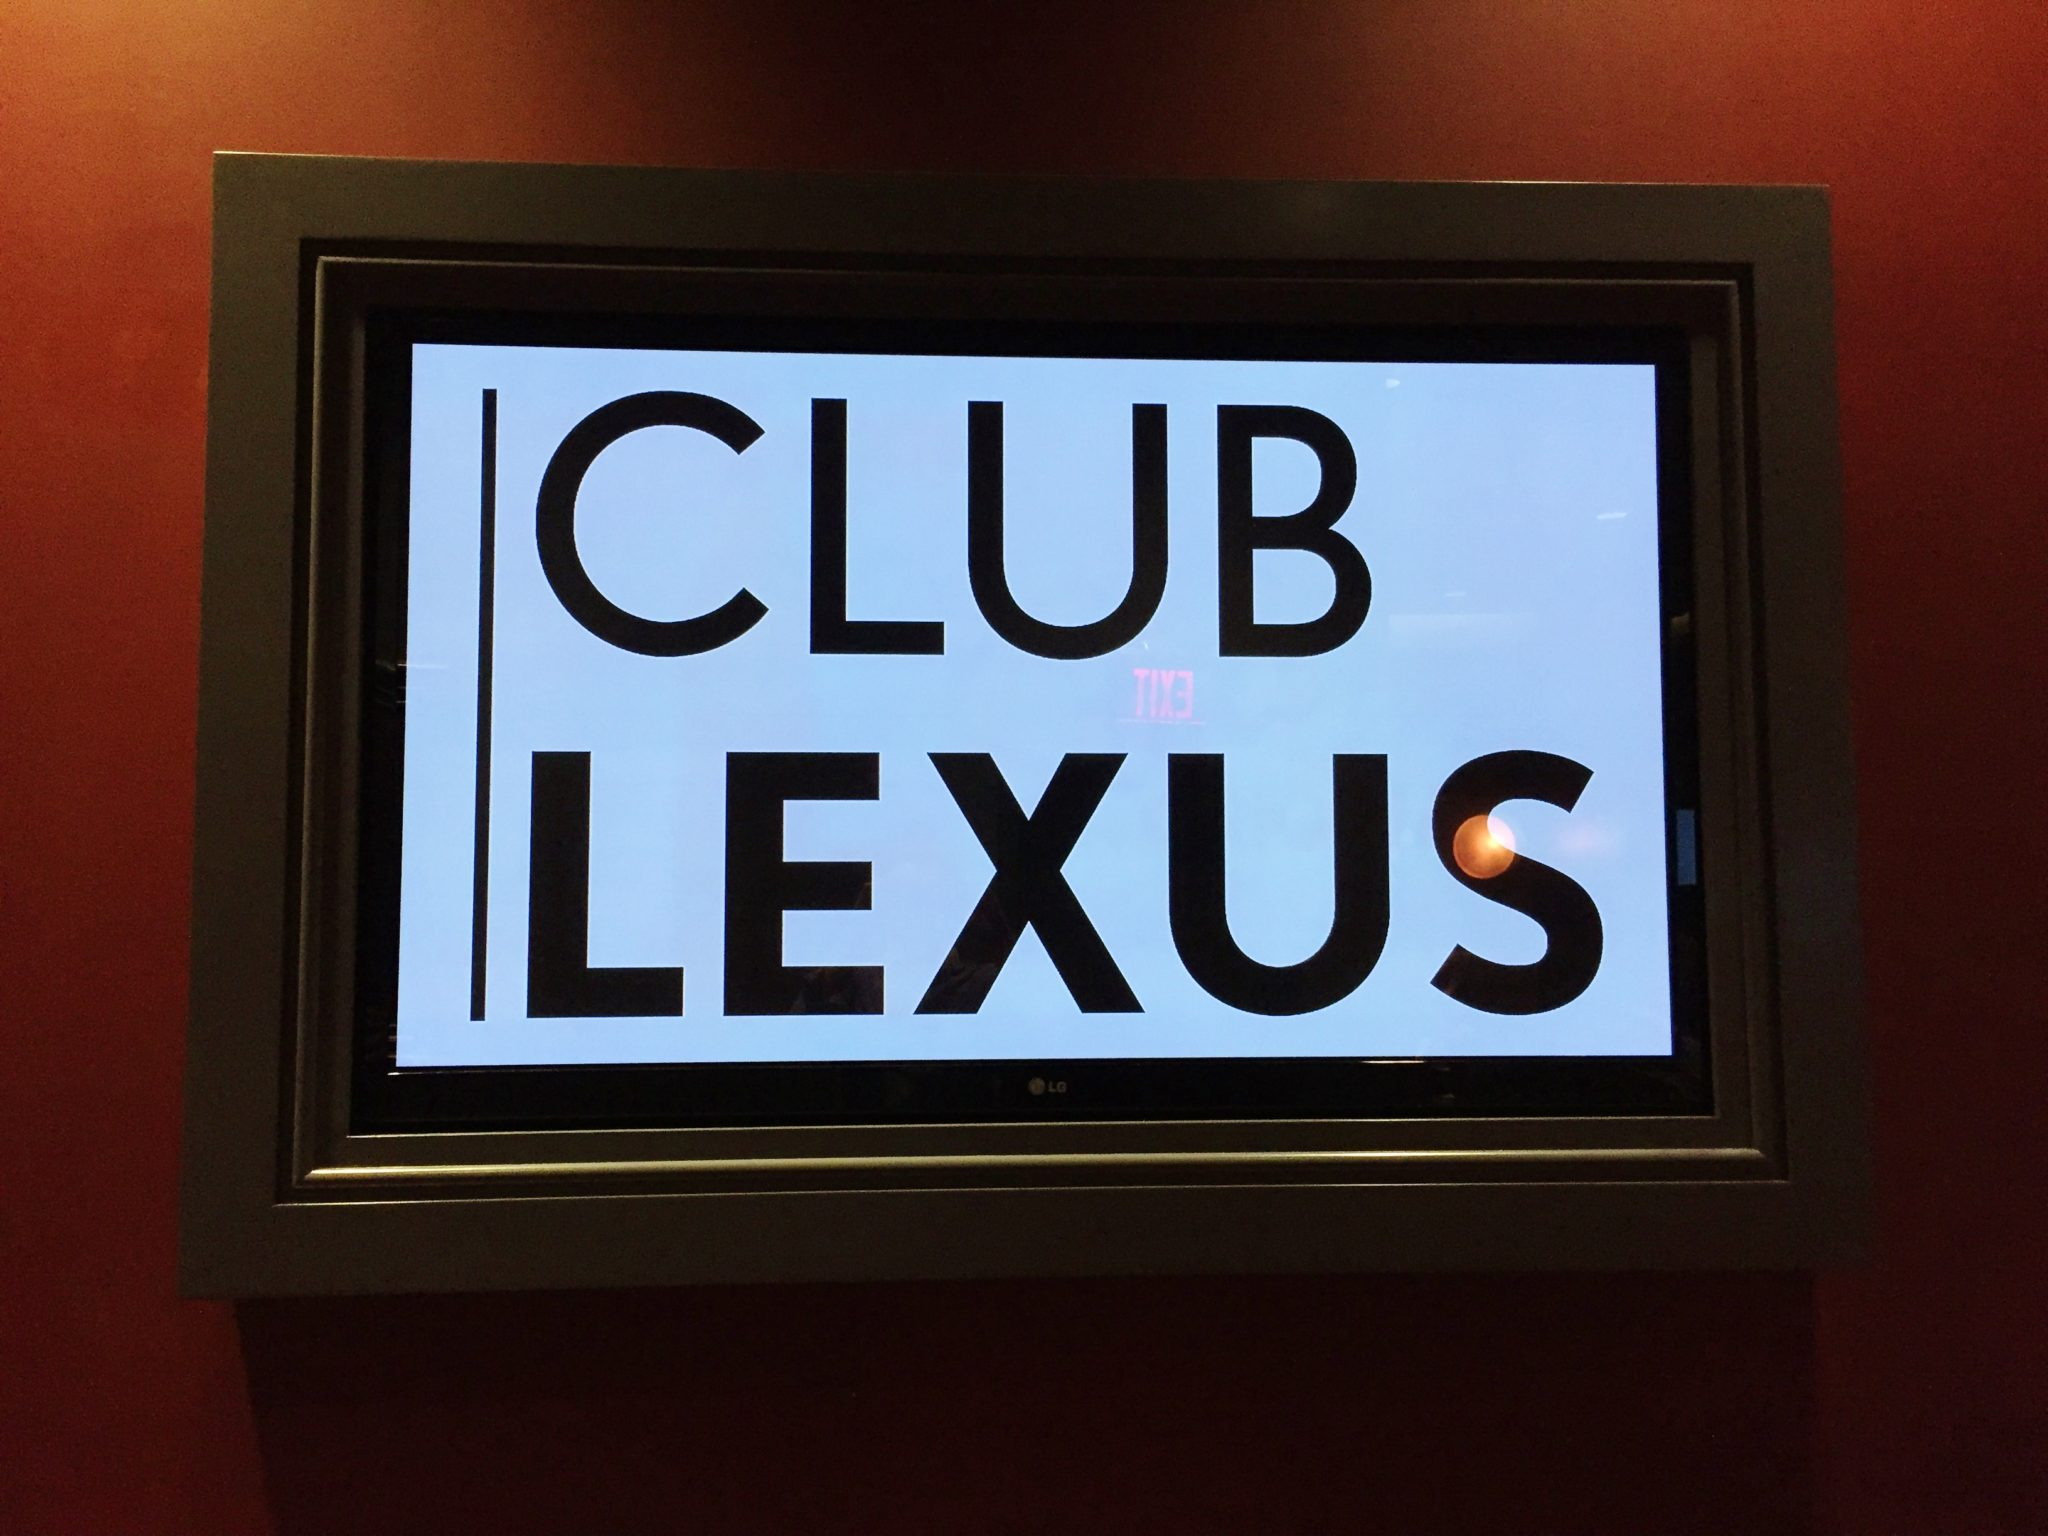 Enjoy Celebrity Radio's Exclusive Club Lexus Review 2016…. Club Lexus at BB&T Center South Florda, is the most impressive VIP lounge experience I've had the pleasure […]